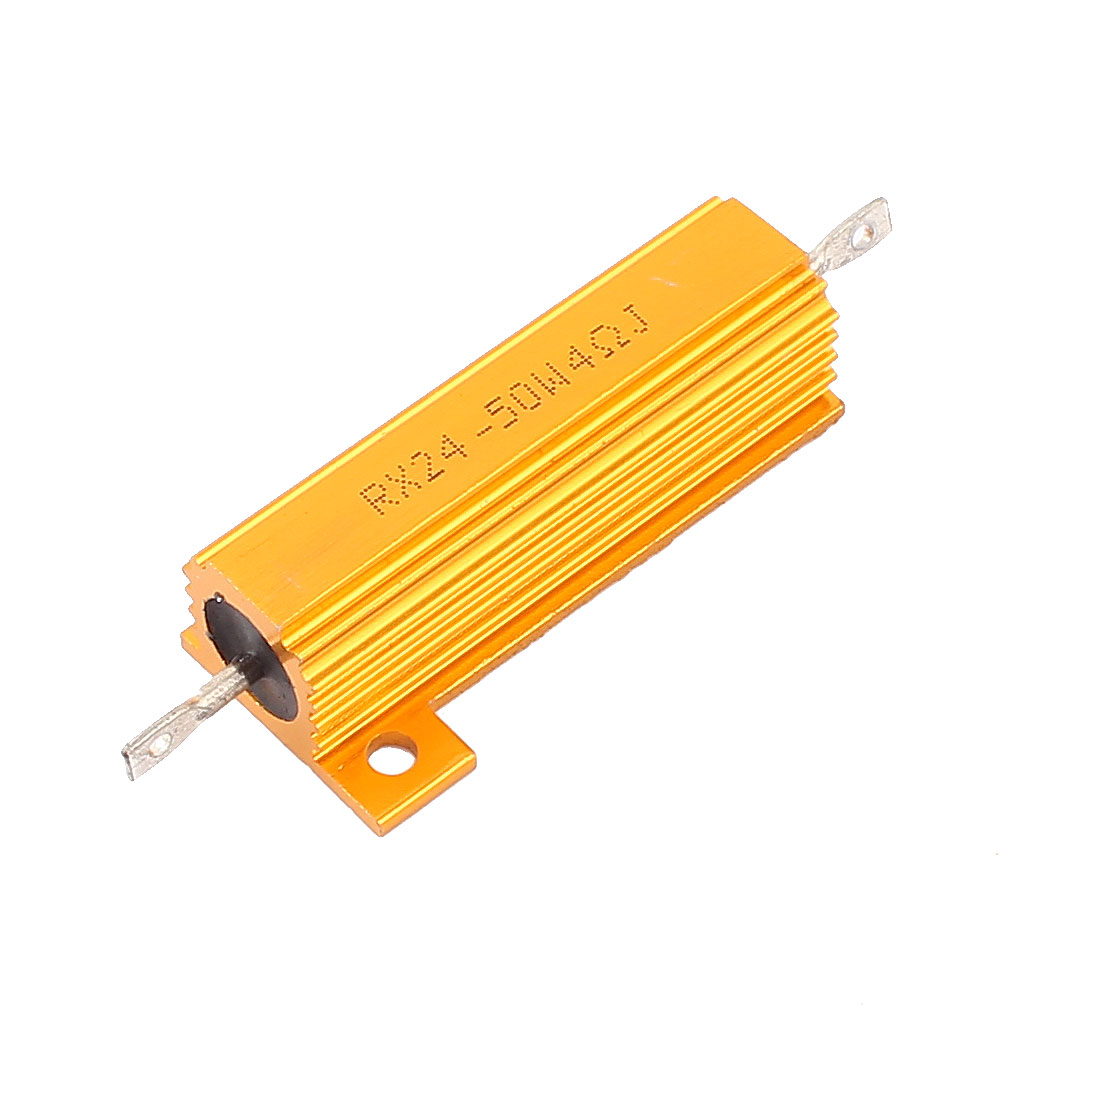 RX24 50W 4 Ohm Aluminum Housing Clad Wirewound Power Resistor Gold Tone